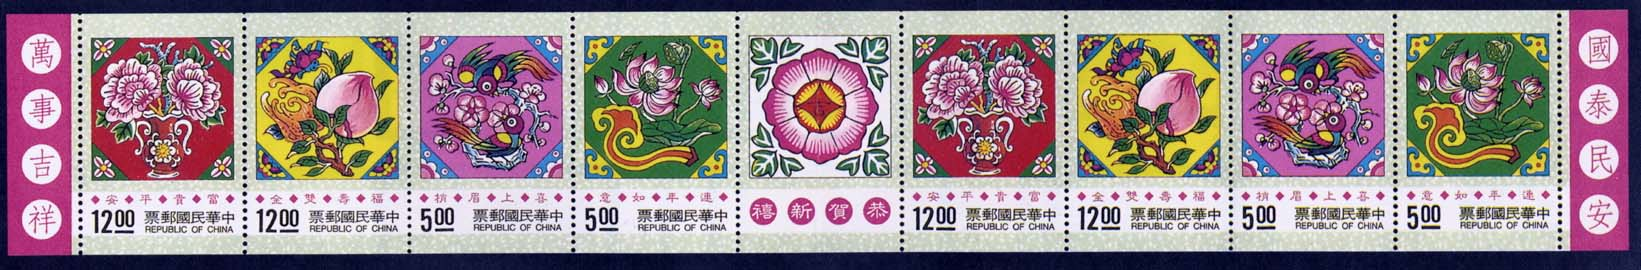 (S315.5)Special 315 The Auspicious Postage Stamps (Issue of 1993)